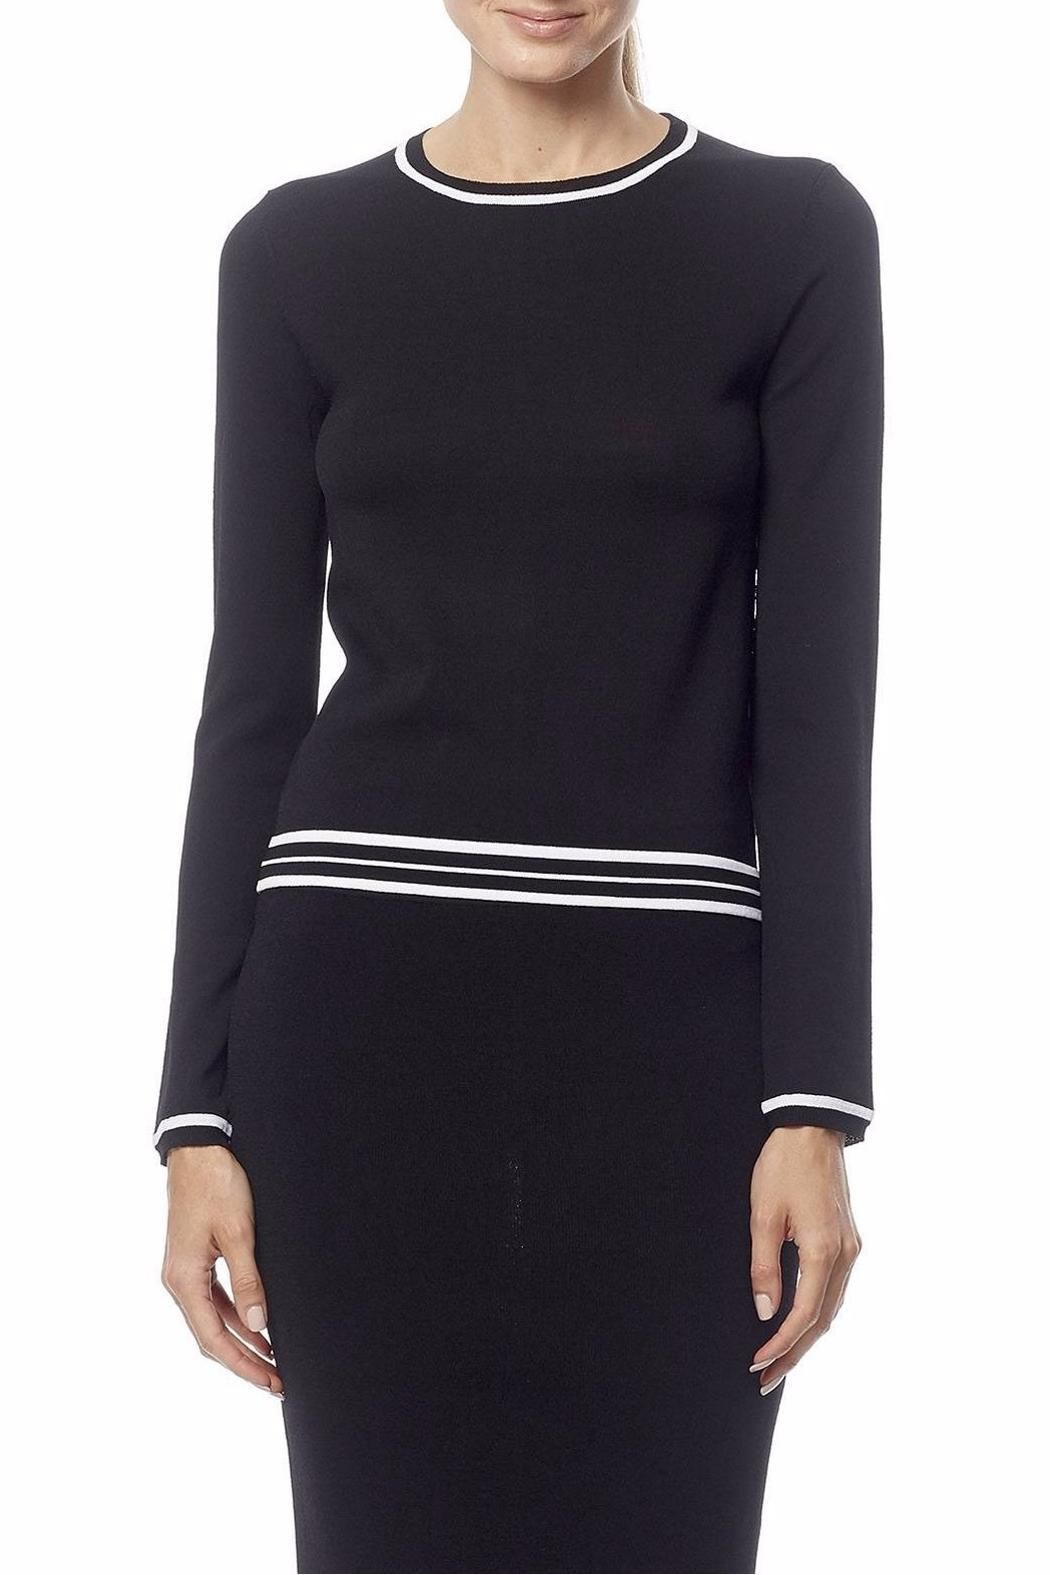 This stretchy crew top is adorned with white stripes on the trims featuring a triangular open slit on the back for a contemporary look. Uma Sweater by 360 Cashmere. Clothing - Sweaters - Crew & Scoop Neck Princeton New Jersey